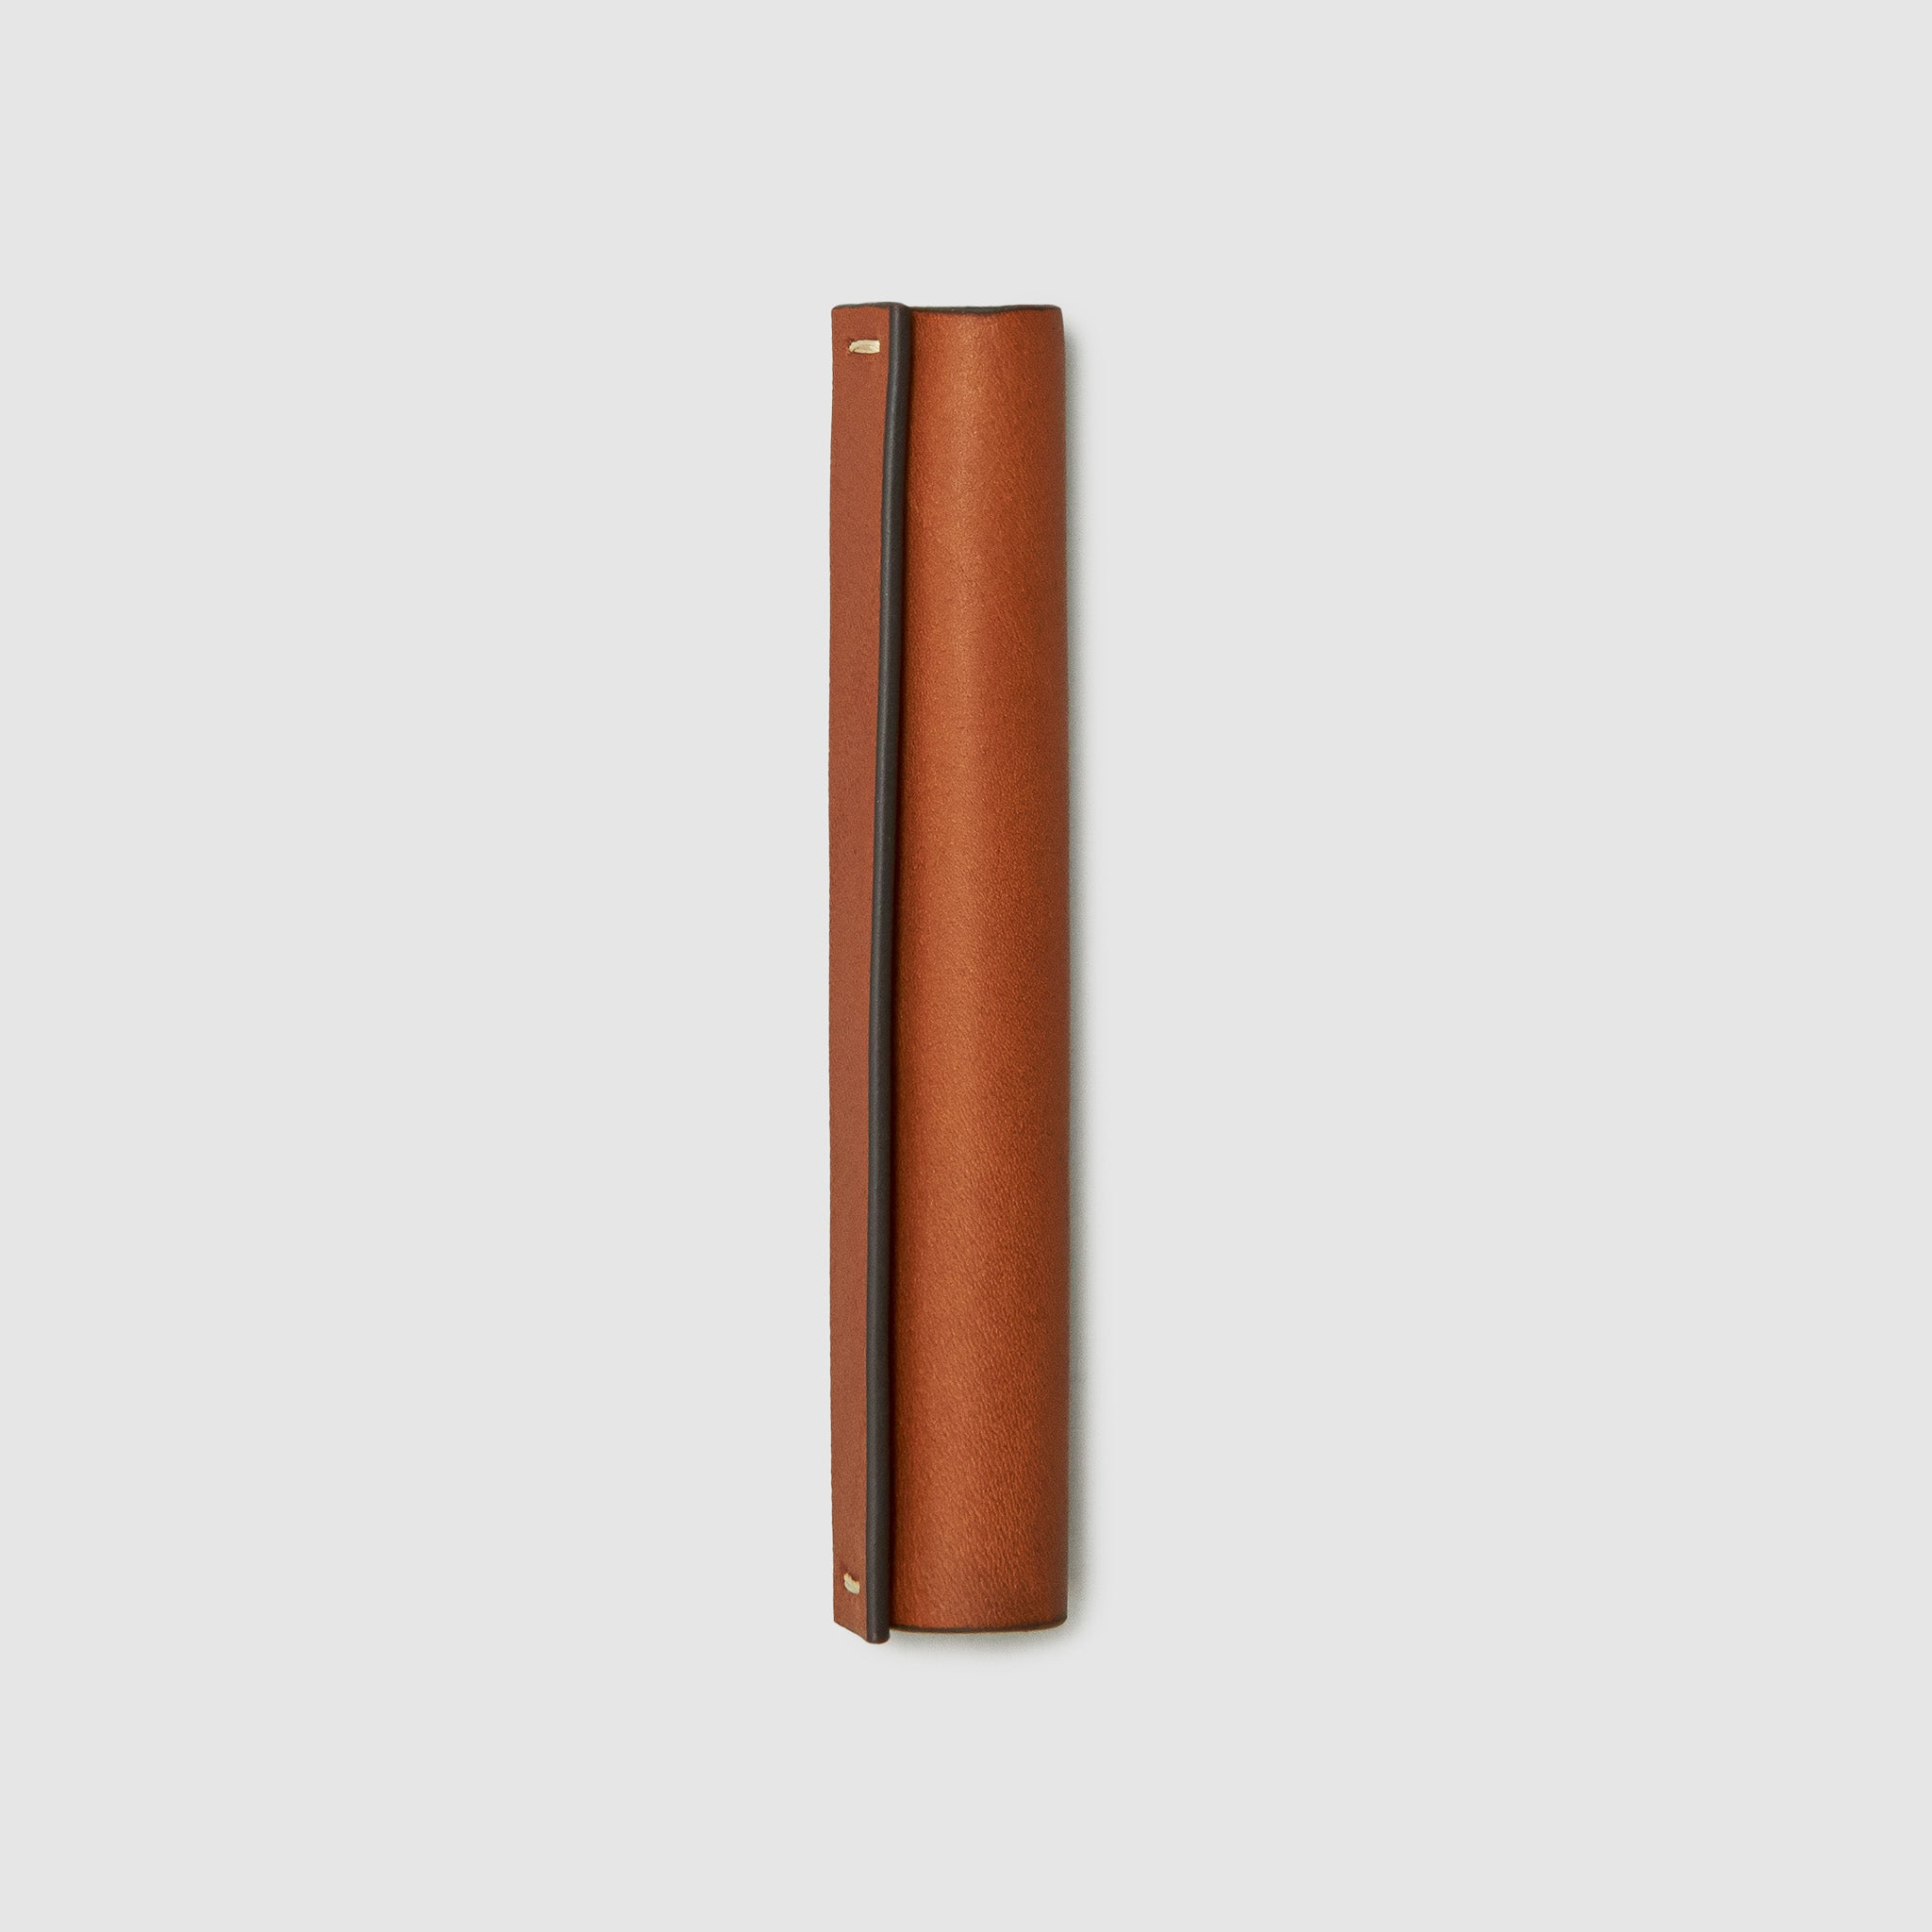 CW&T pen sleeve french calfskin *hover _cognac